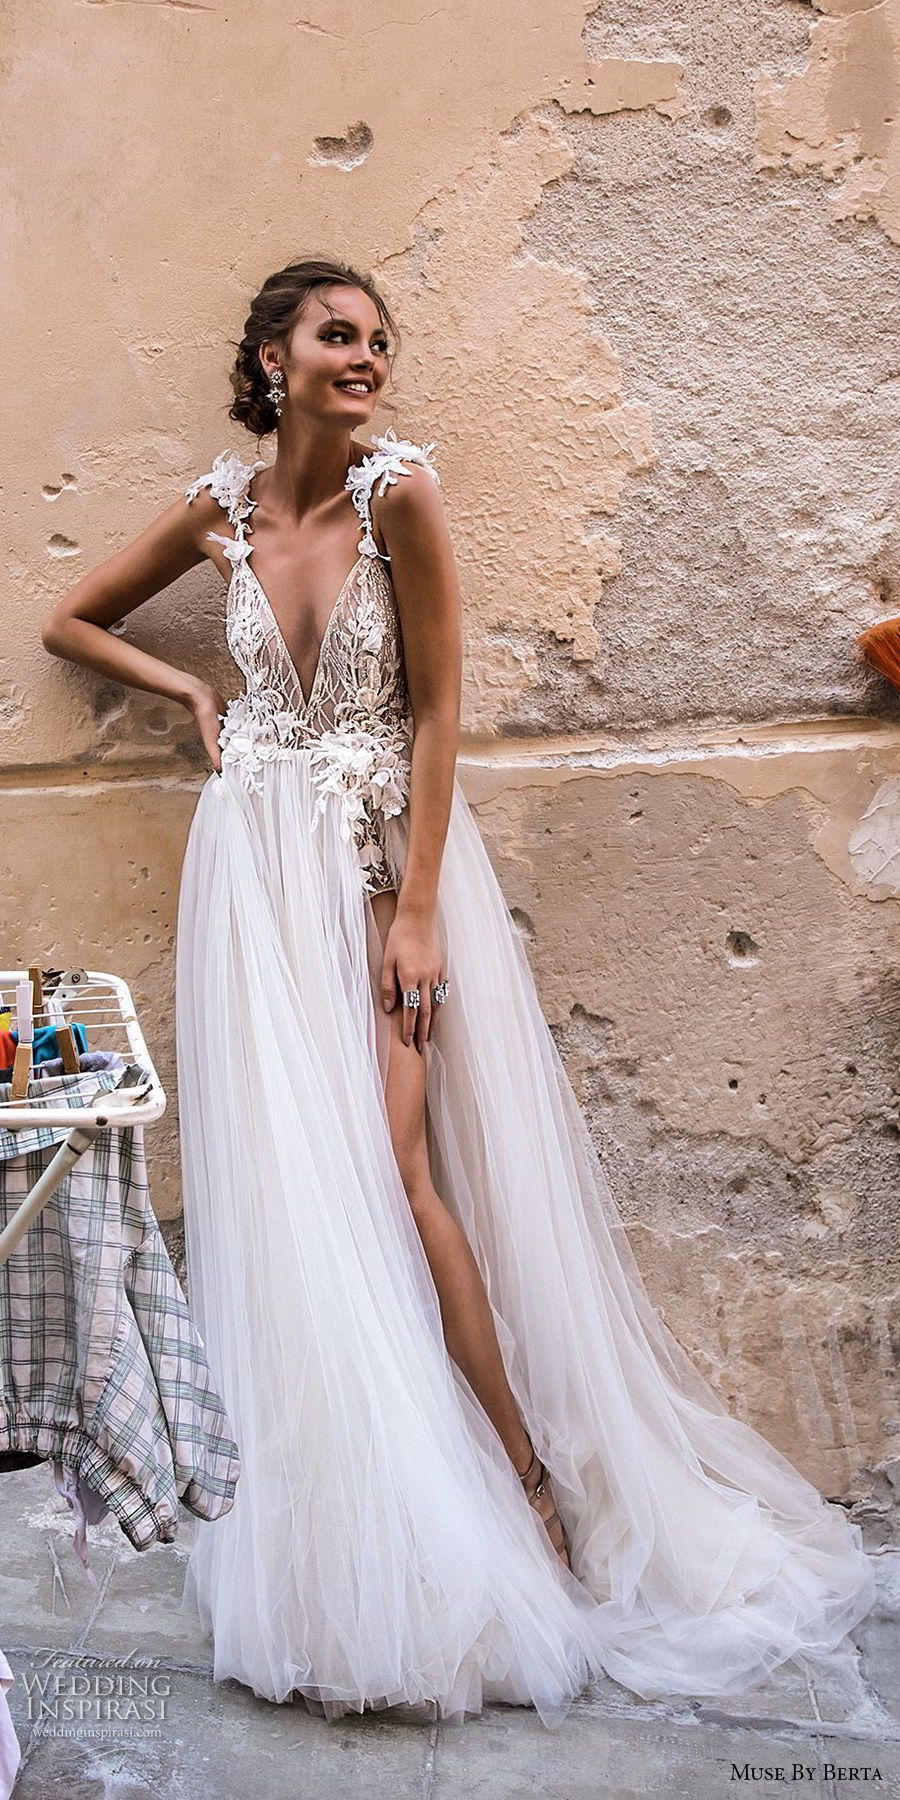 Muse by Berta 2018 Wedding Dresses — Sicily Bridal Campaign ...